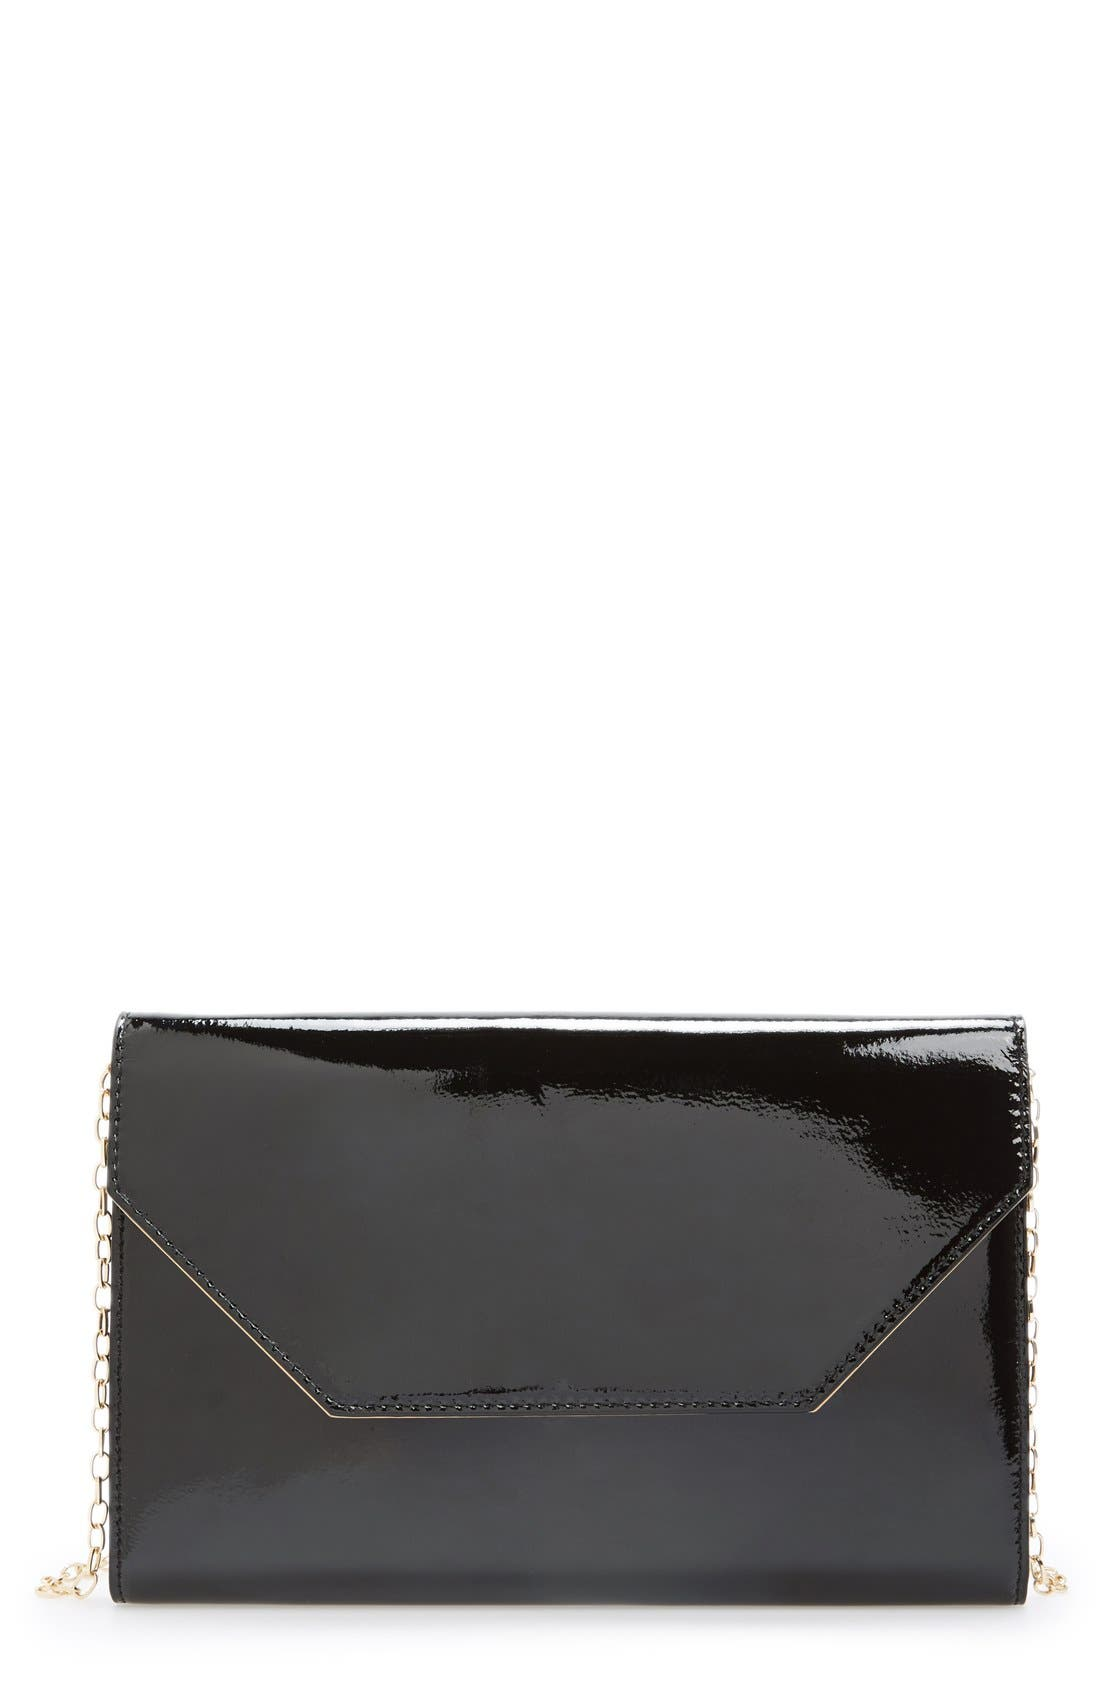 Patent Leather Clutch,                             Main thumbnail 1, color,                             001